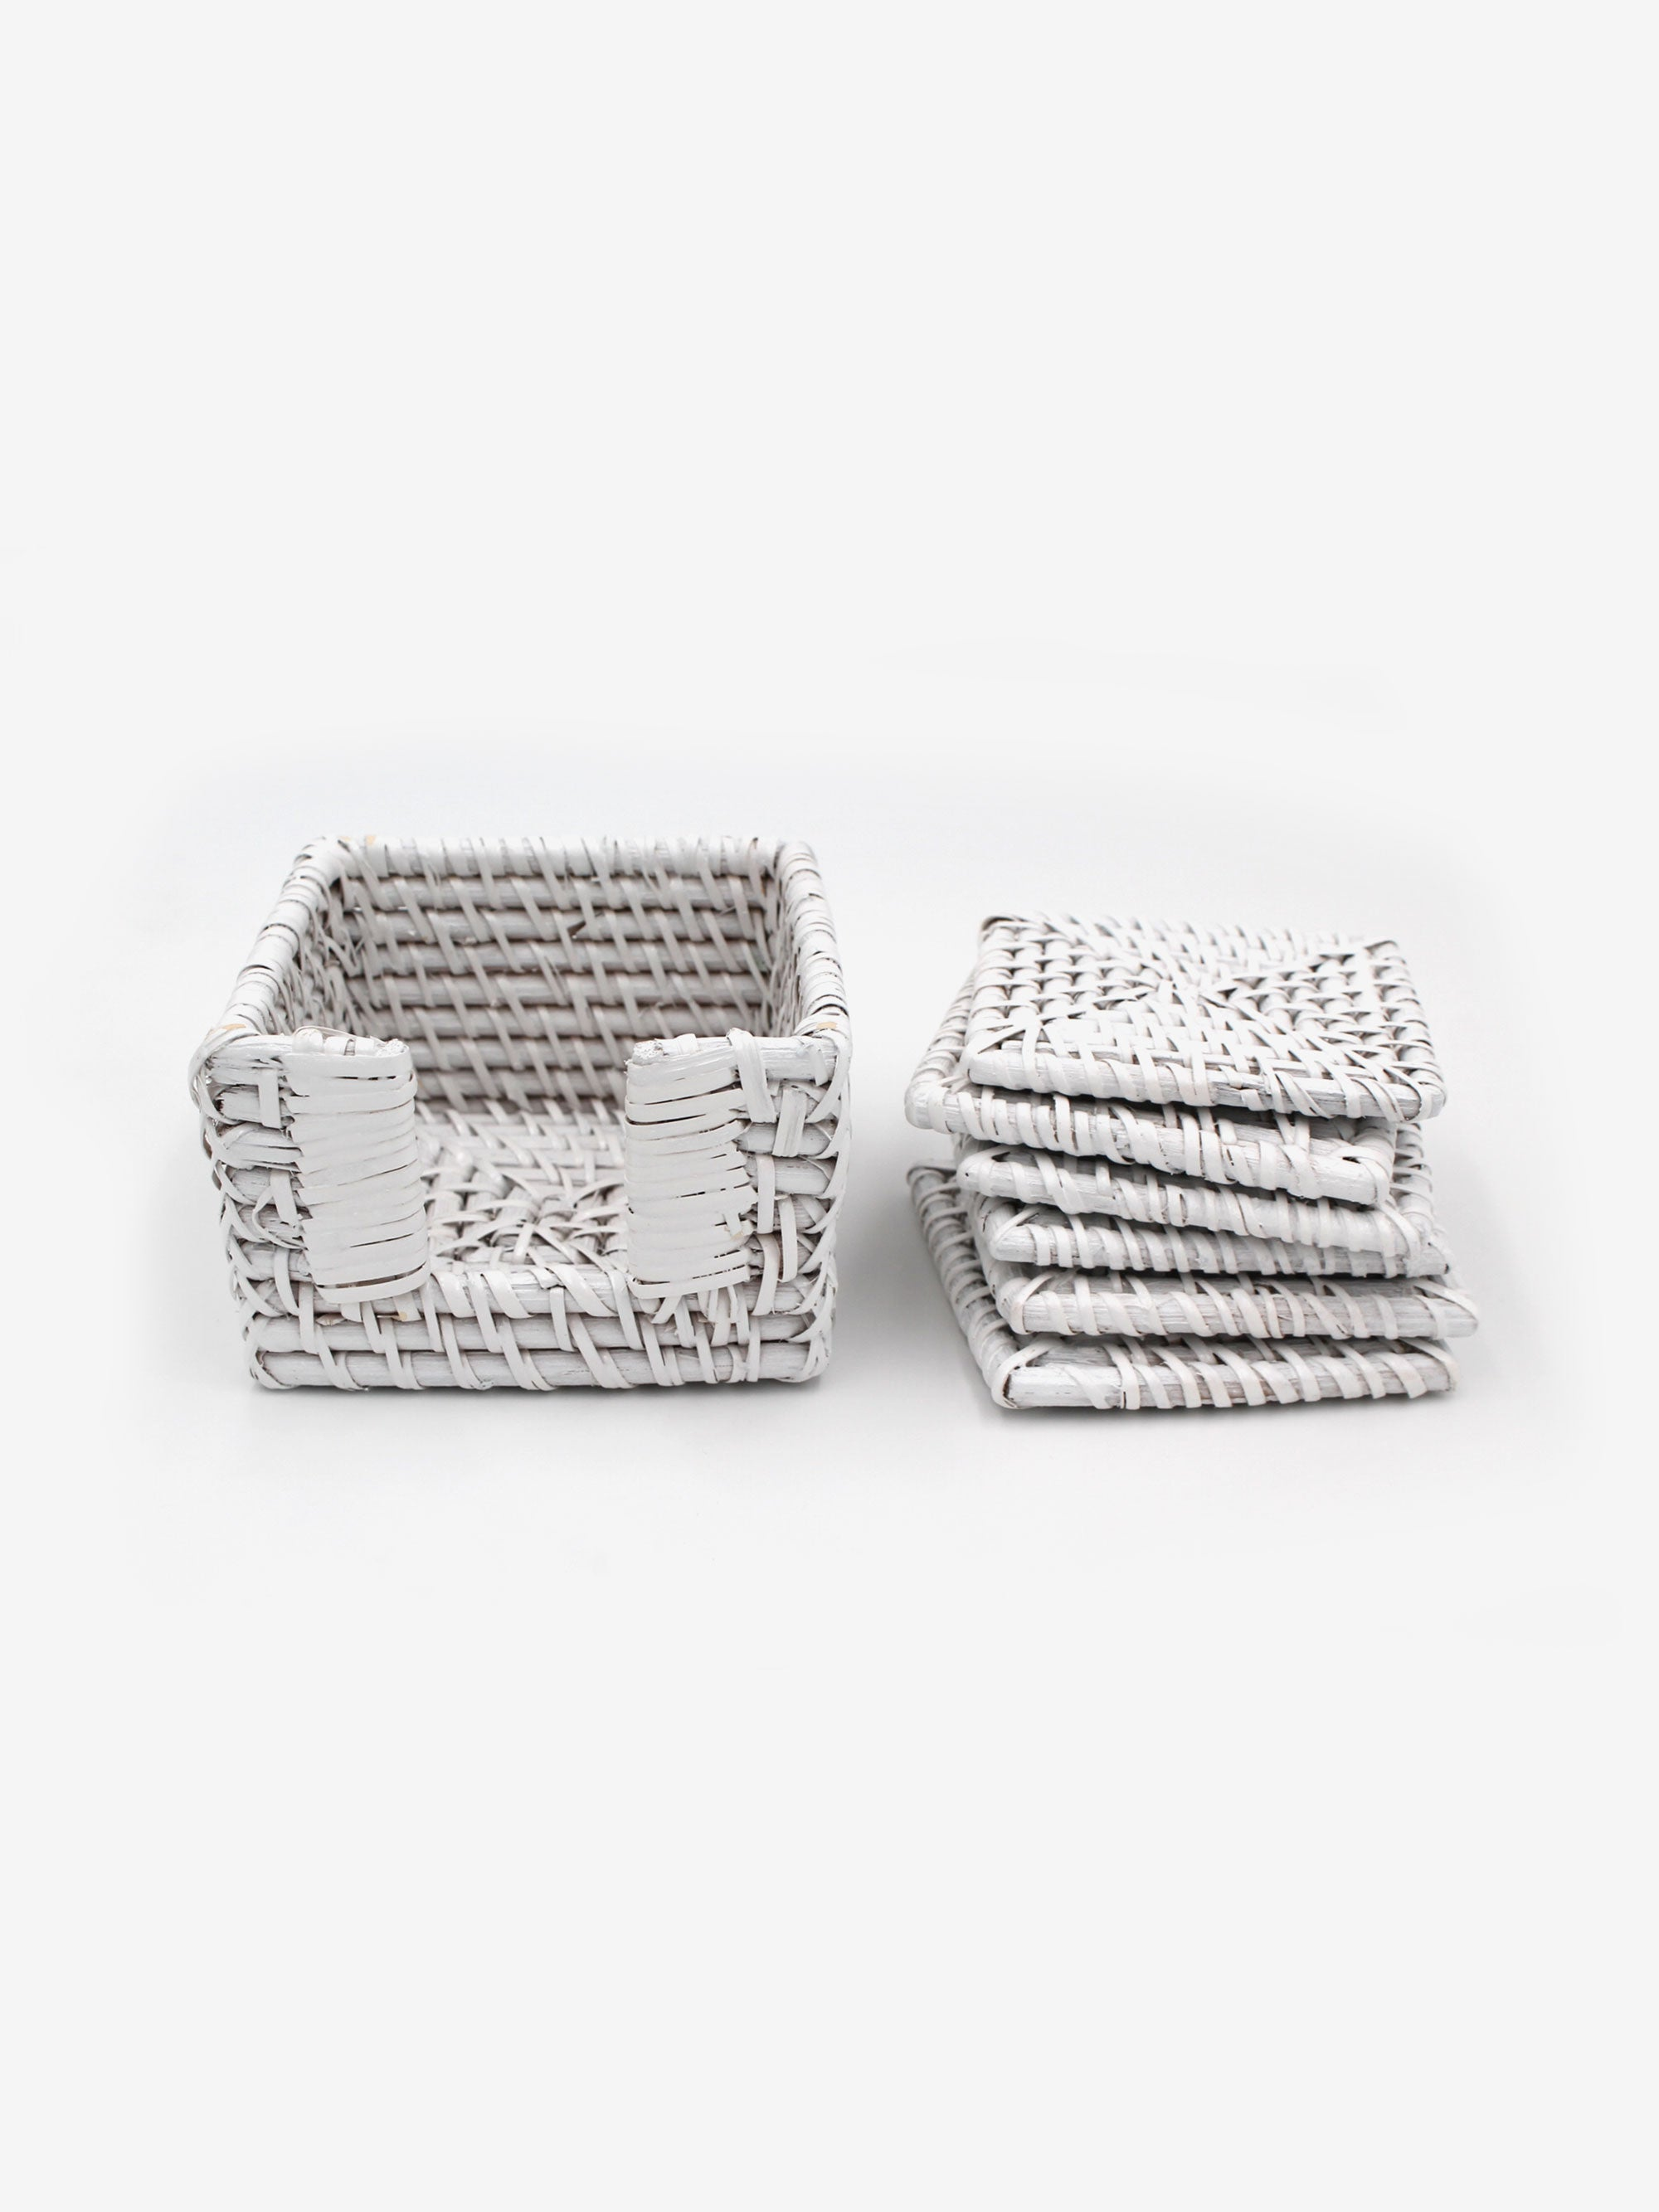 Square Rattan Coasters in White (Set of 6)